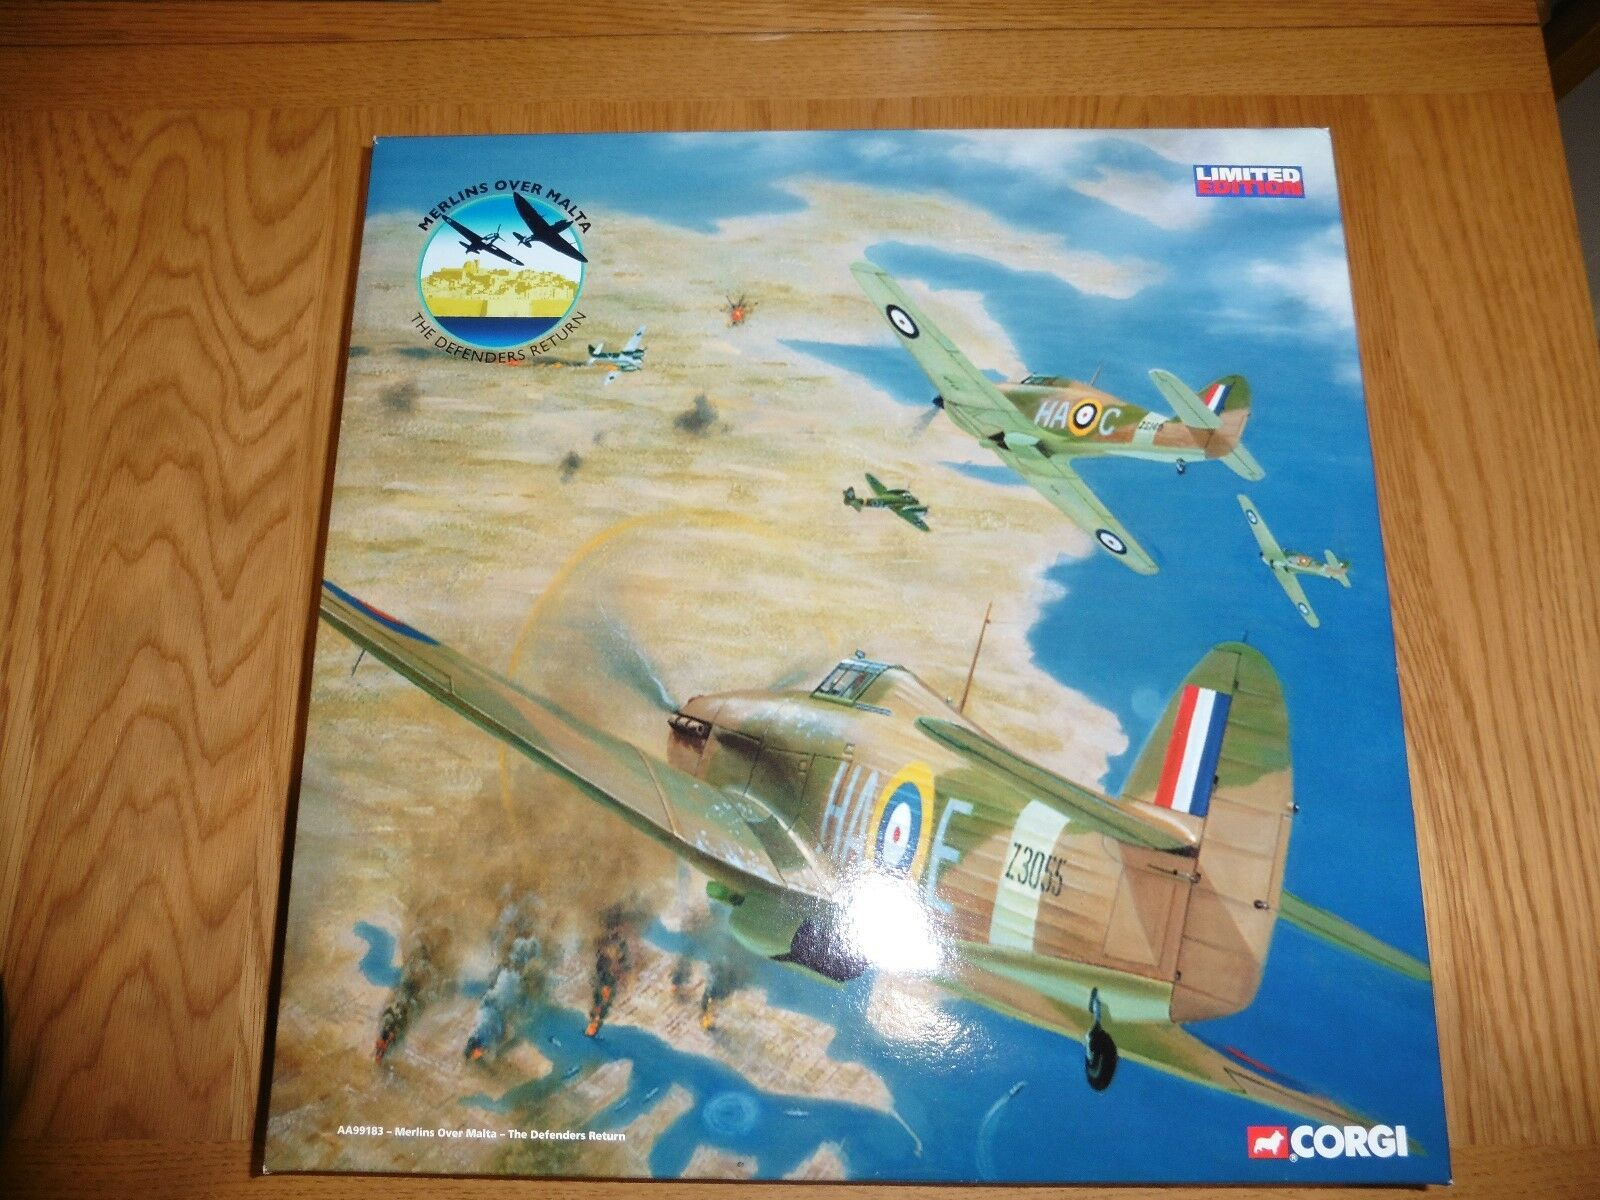 Rare Corgi AA99183 'Merlins Over Malta' - The Defenders Return 1 72 2 piece set